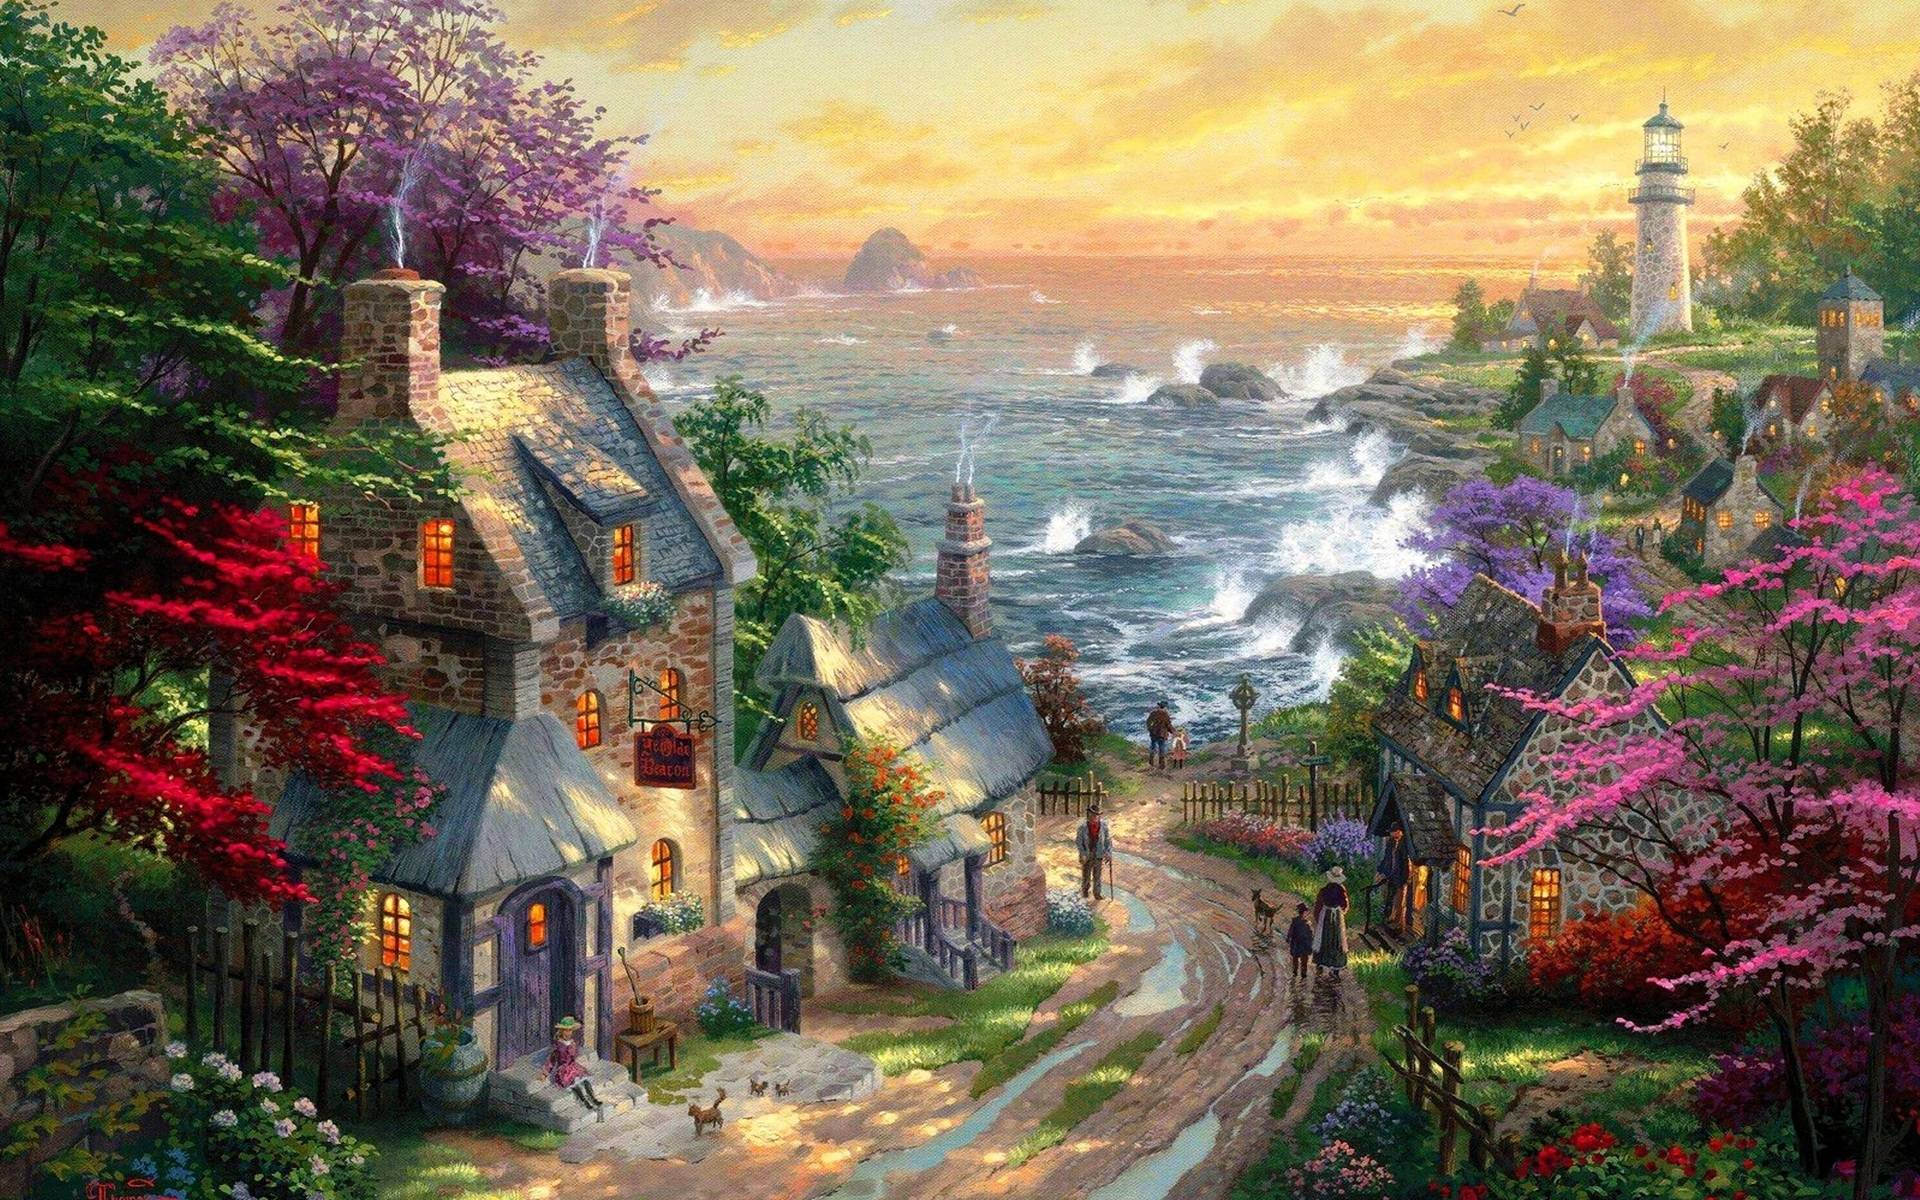 Wallpapers For Thomas Kinkade Disney Dreams Collection Wallpaper 1920x1200